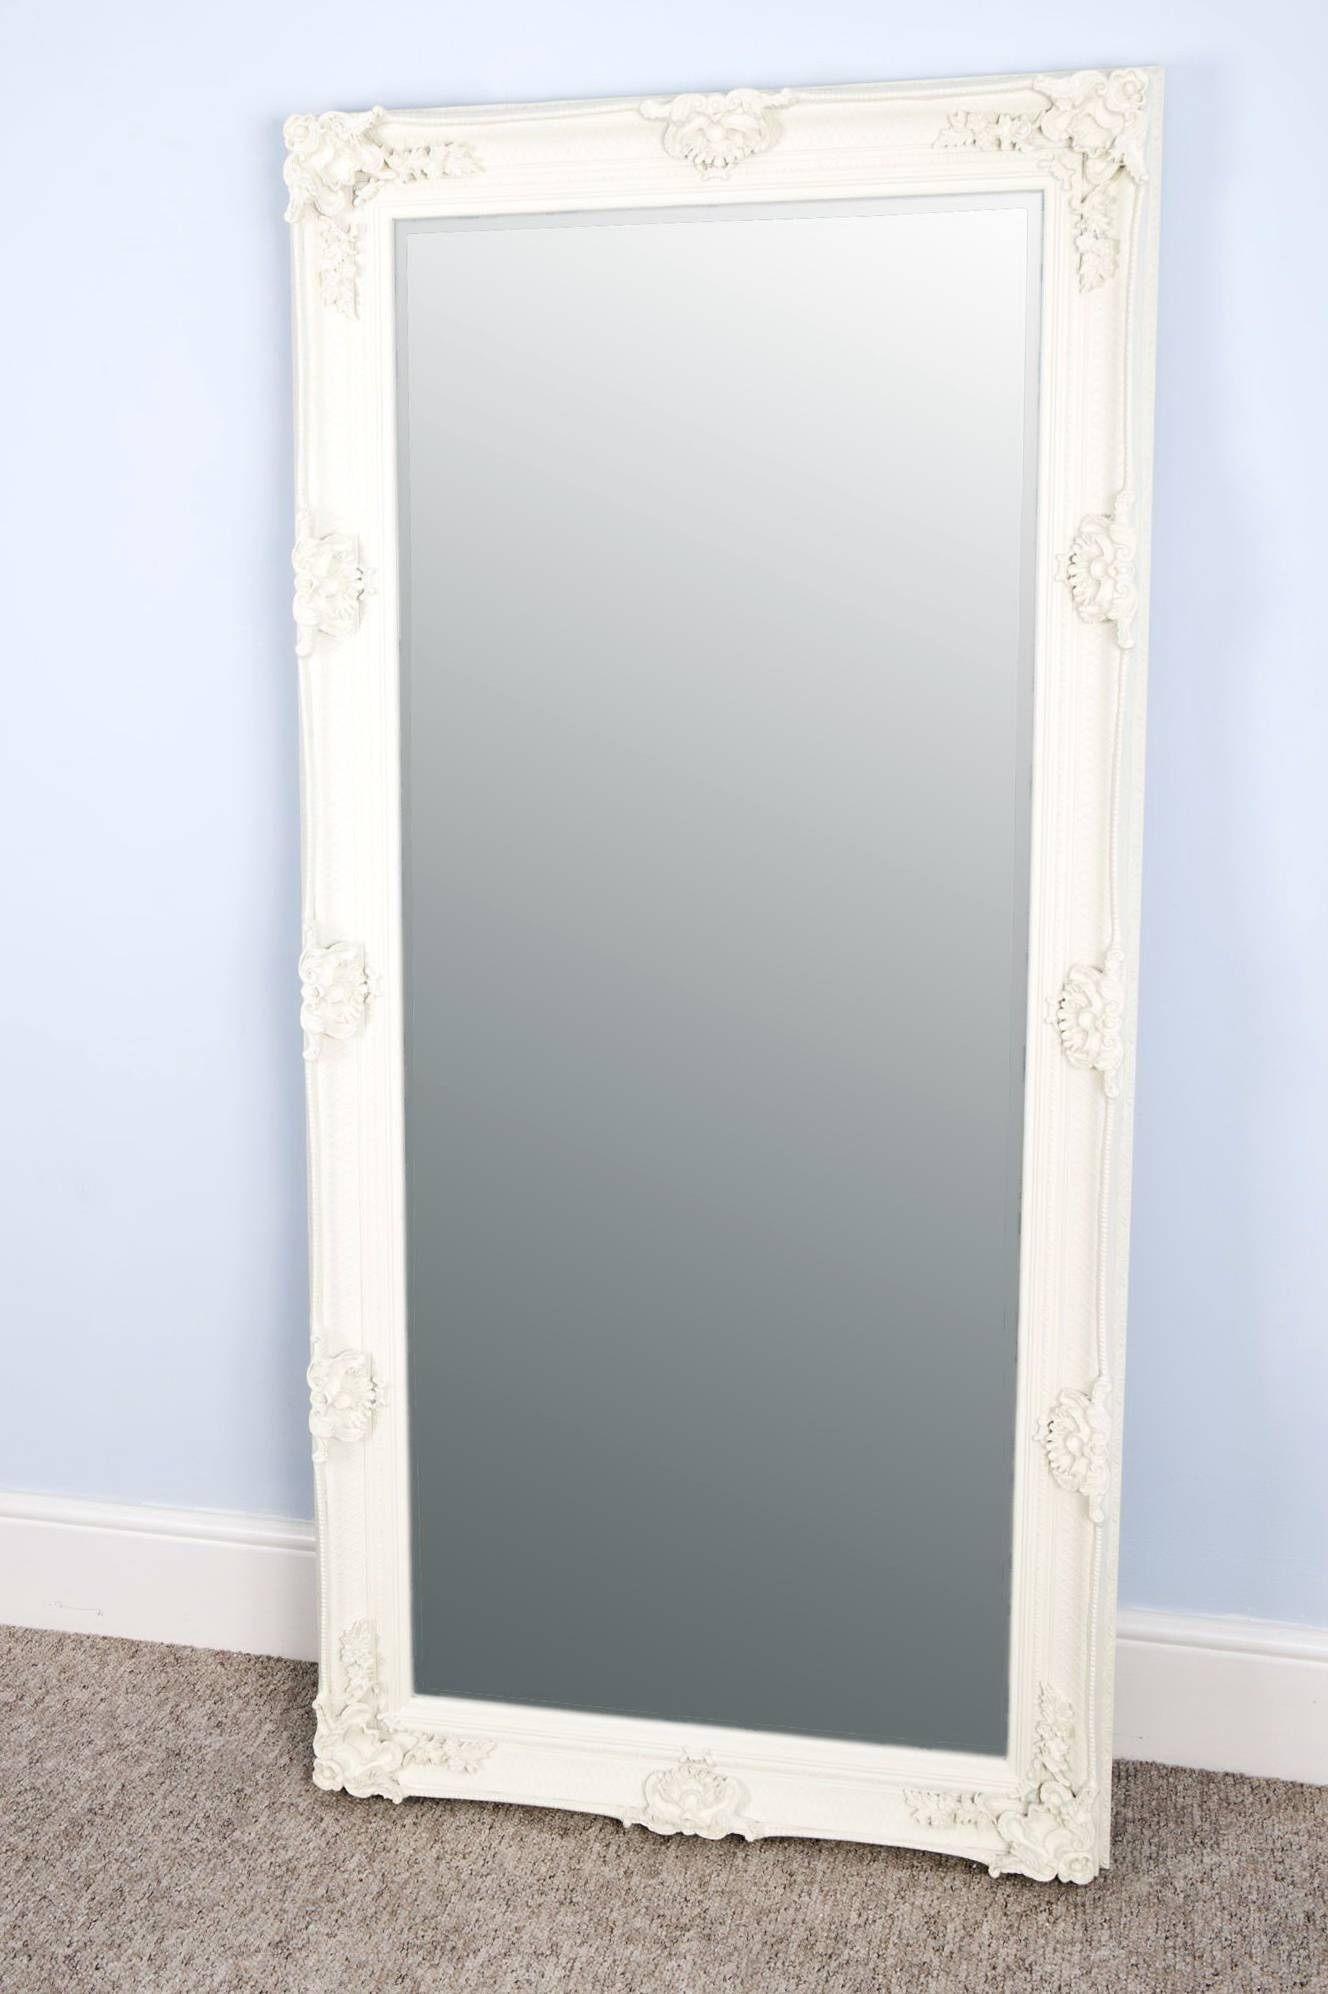 Ikea Wall Mirror Explore Gallery Of Full Length Frameless Wall Mirrors Showing 8